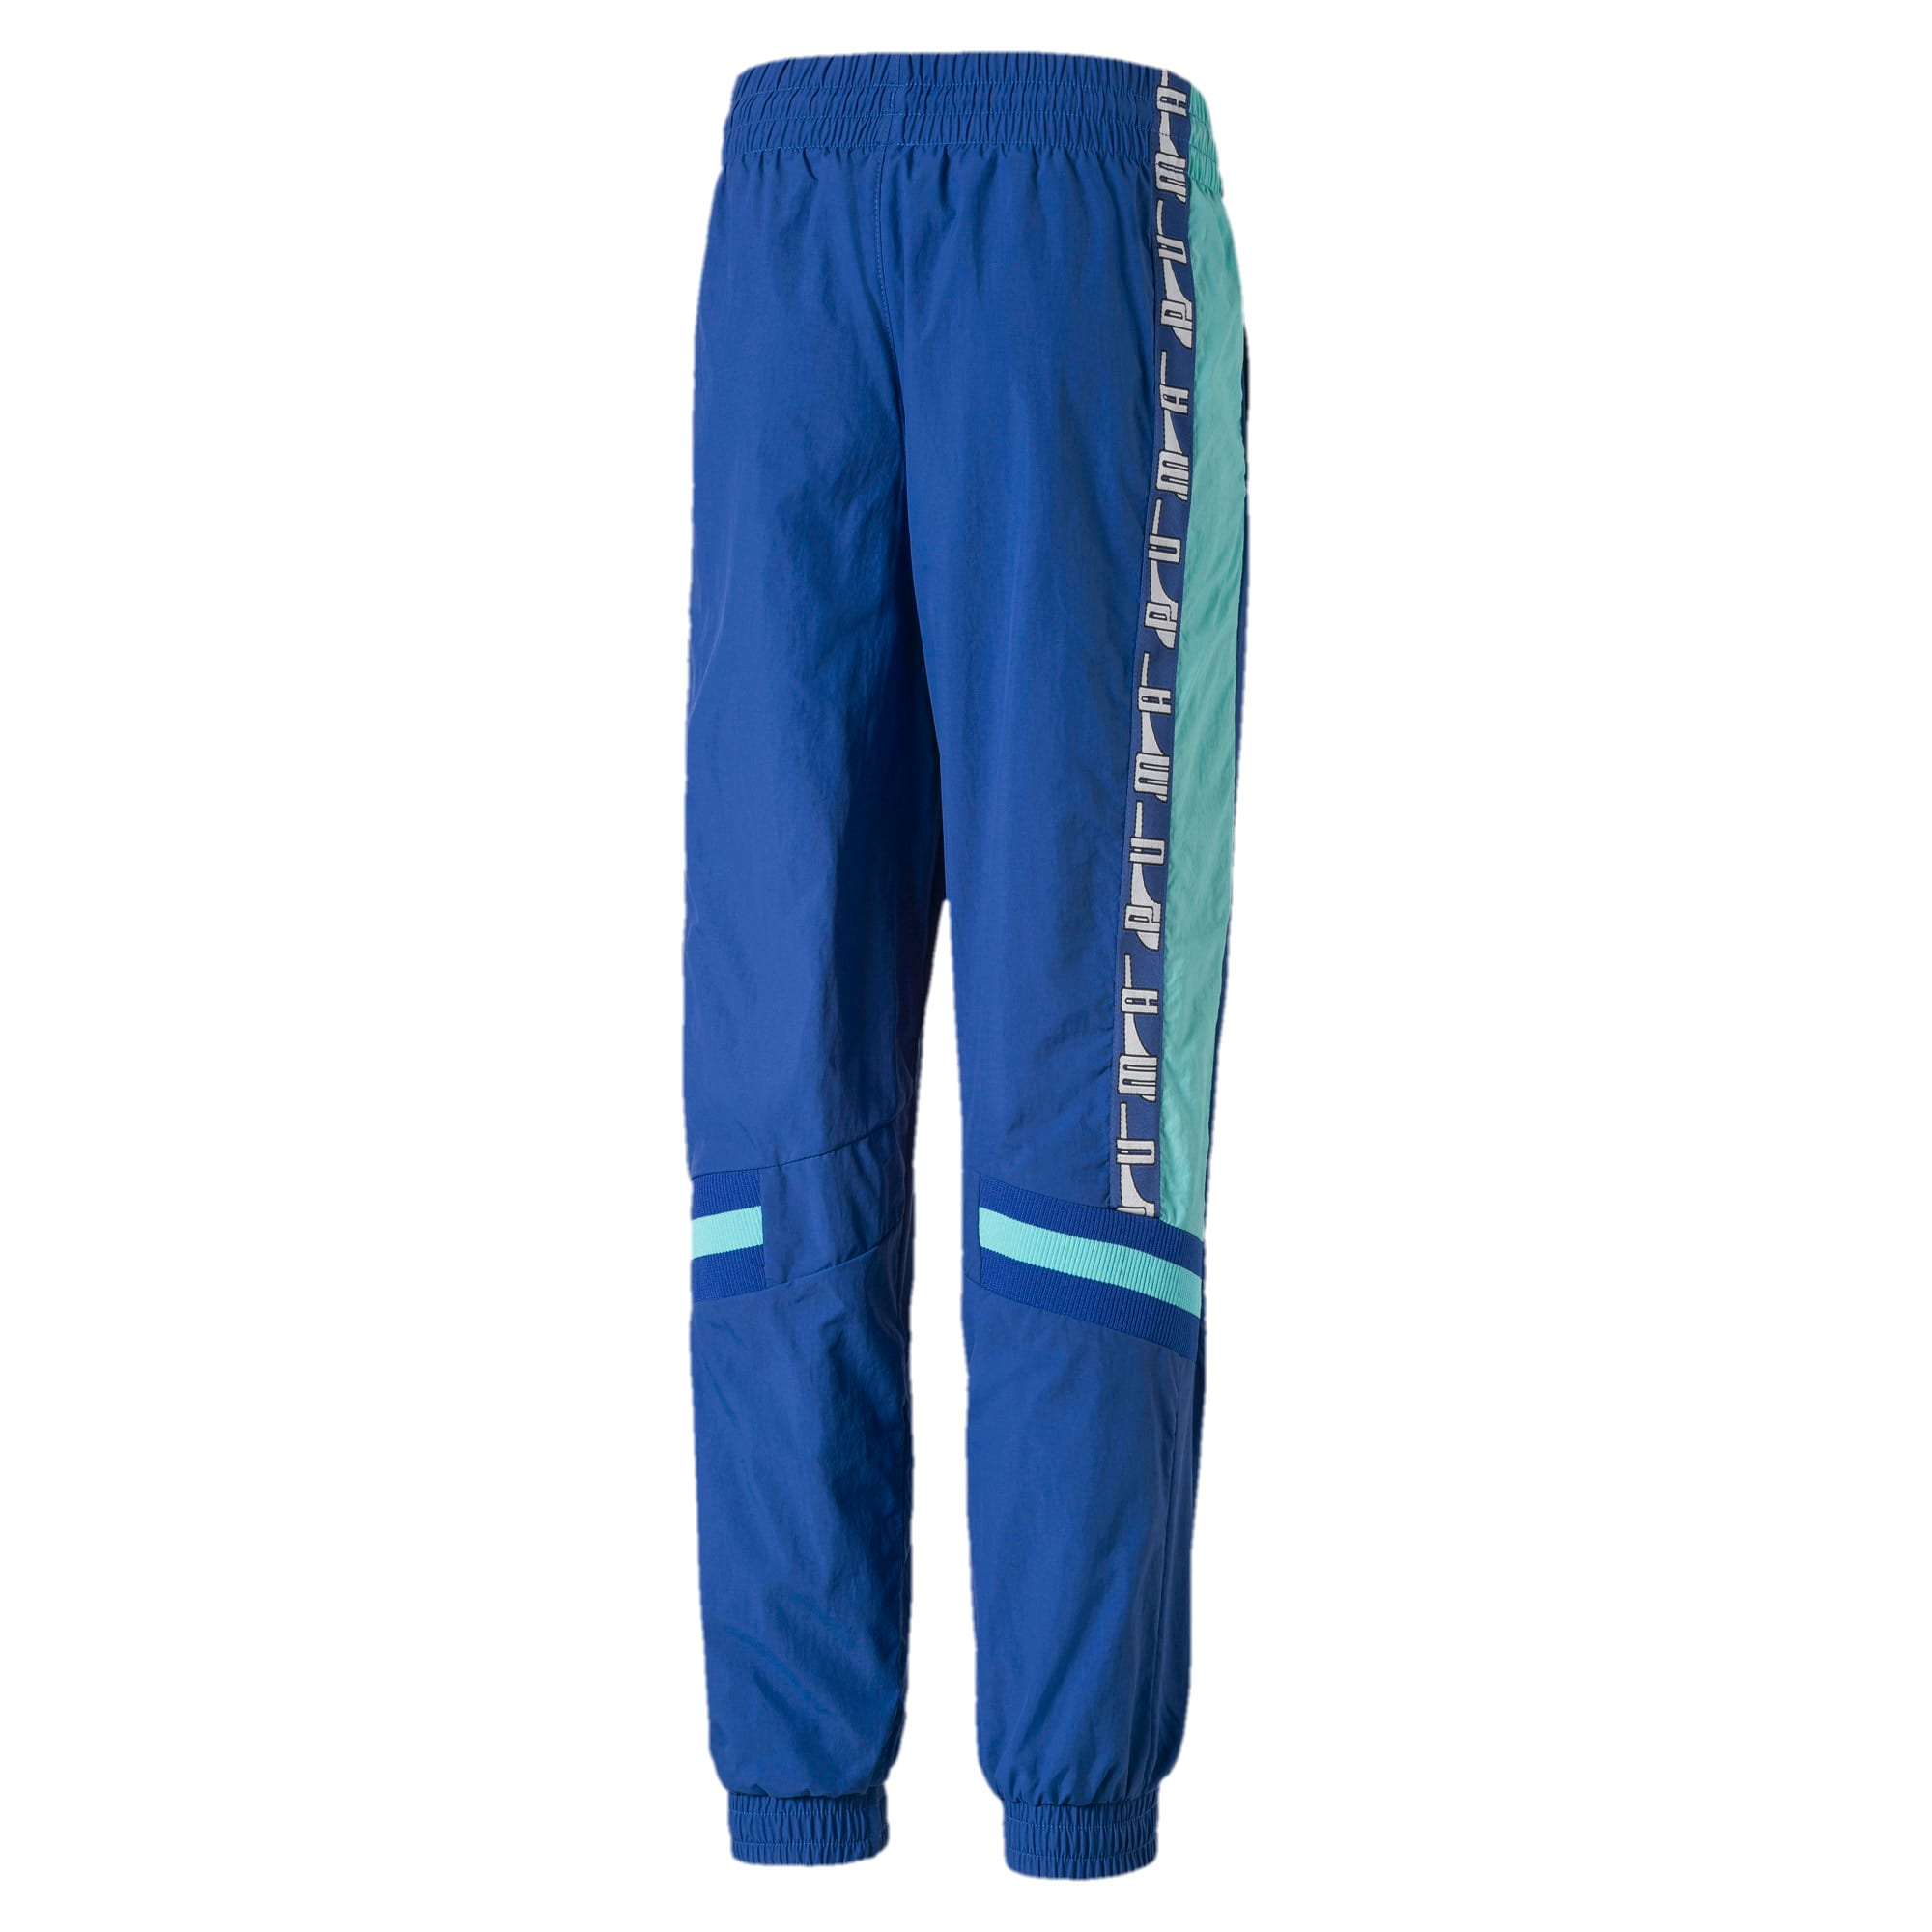 Thumbnail 2 of PUMA XTG Woven Boys' Pants, Galaxy Blue, medium